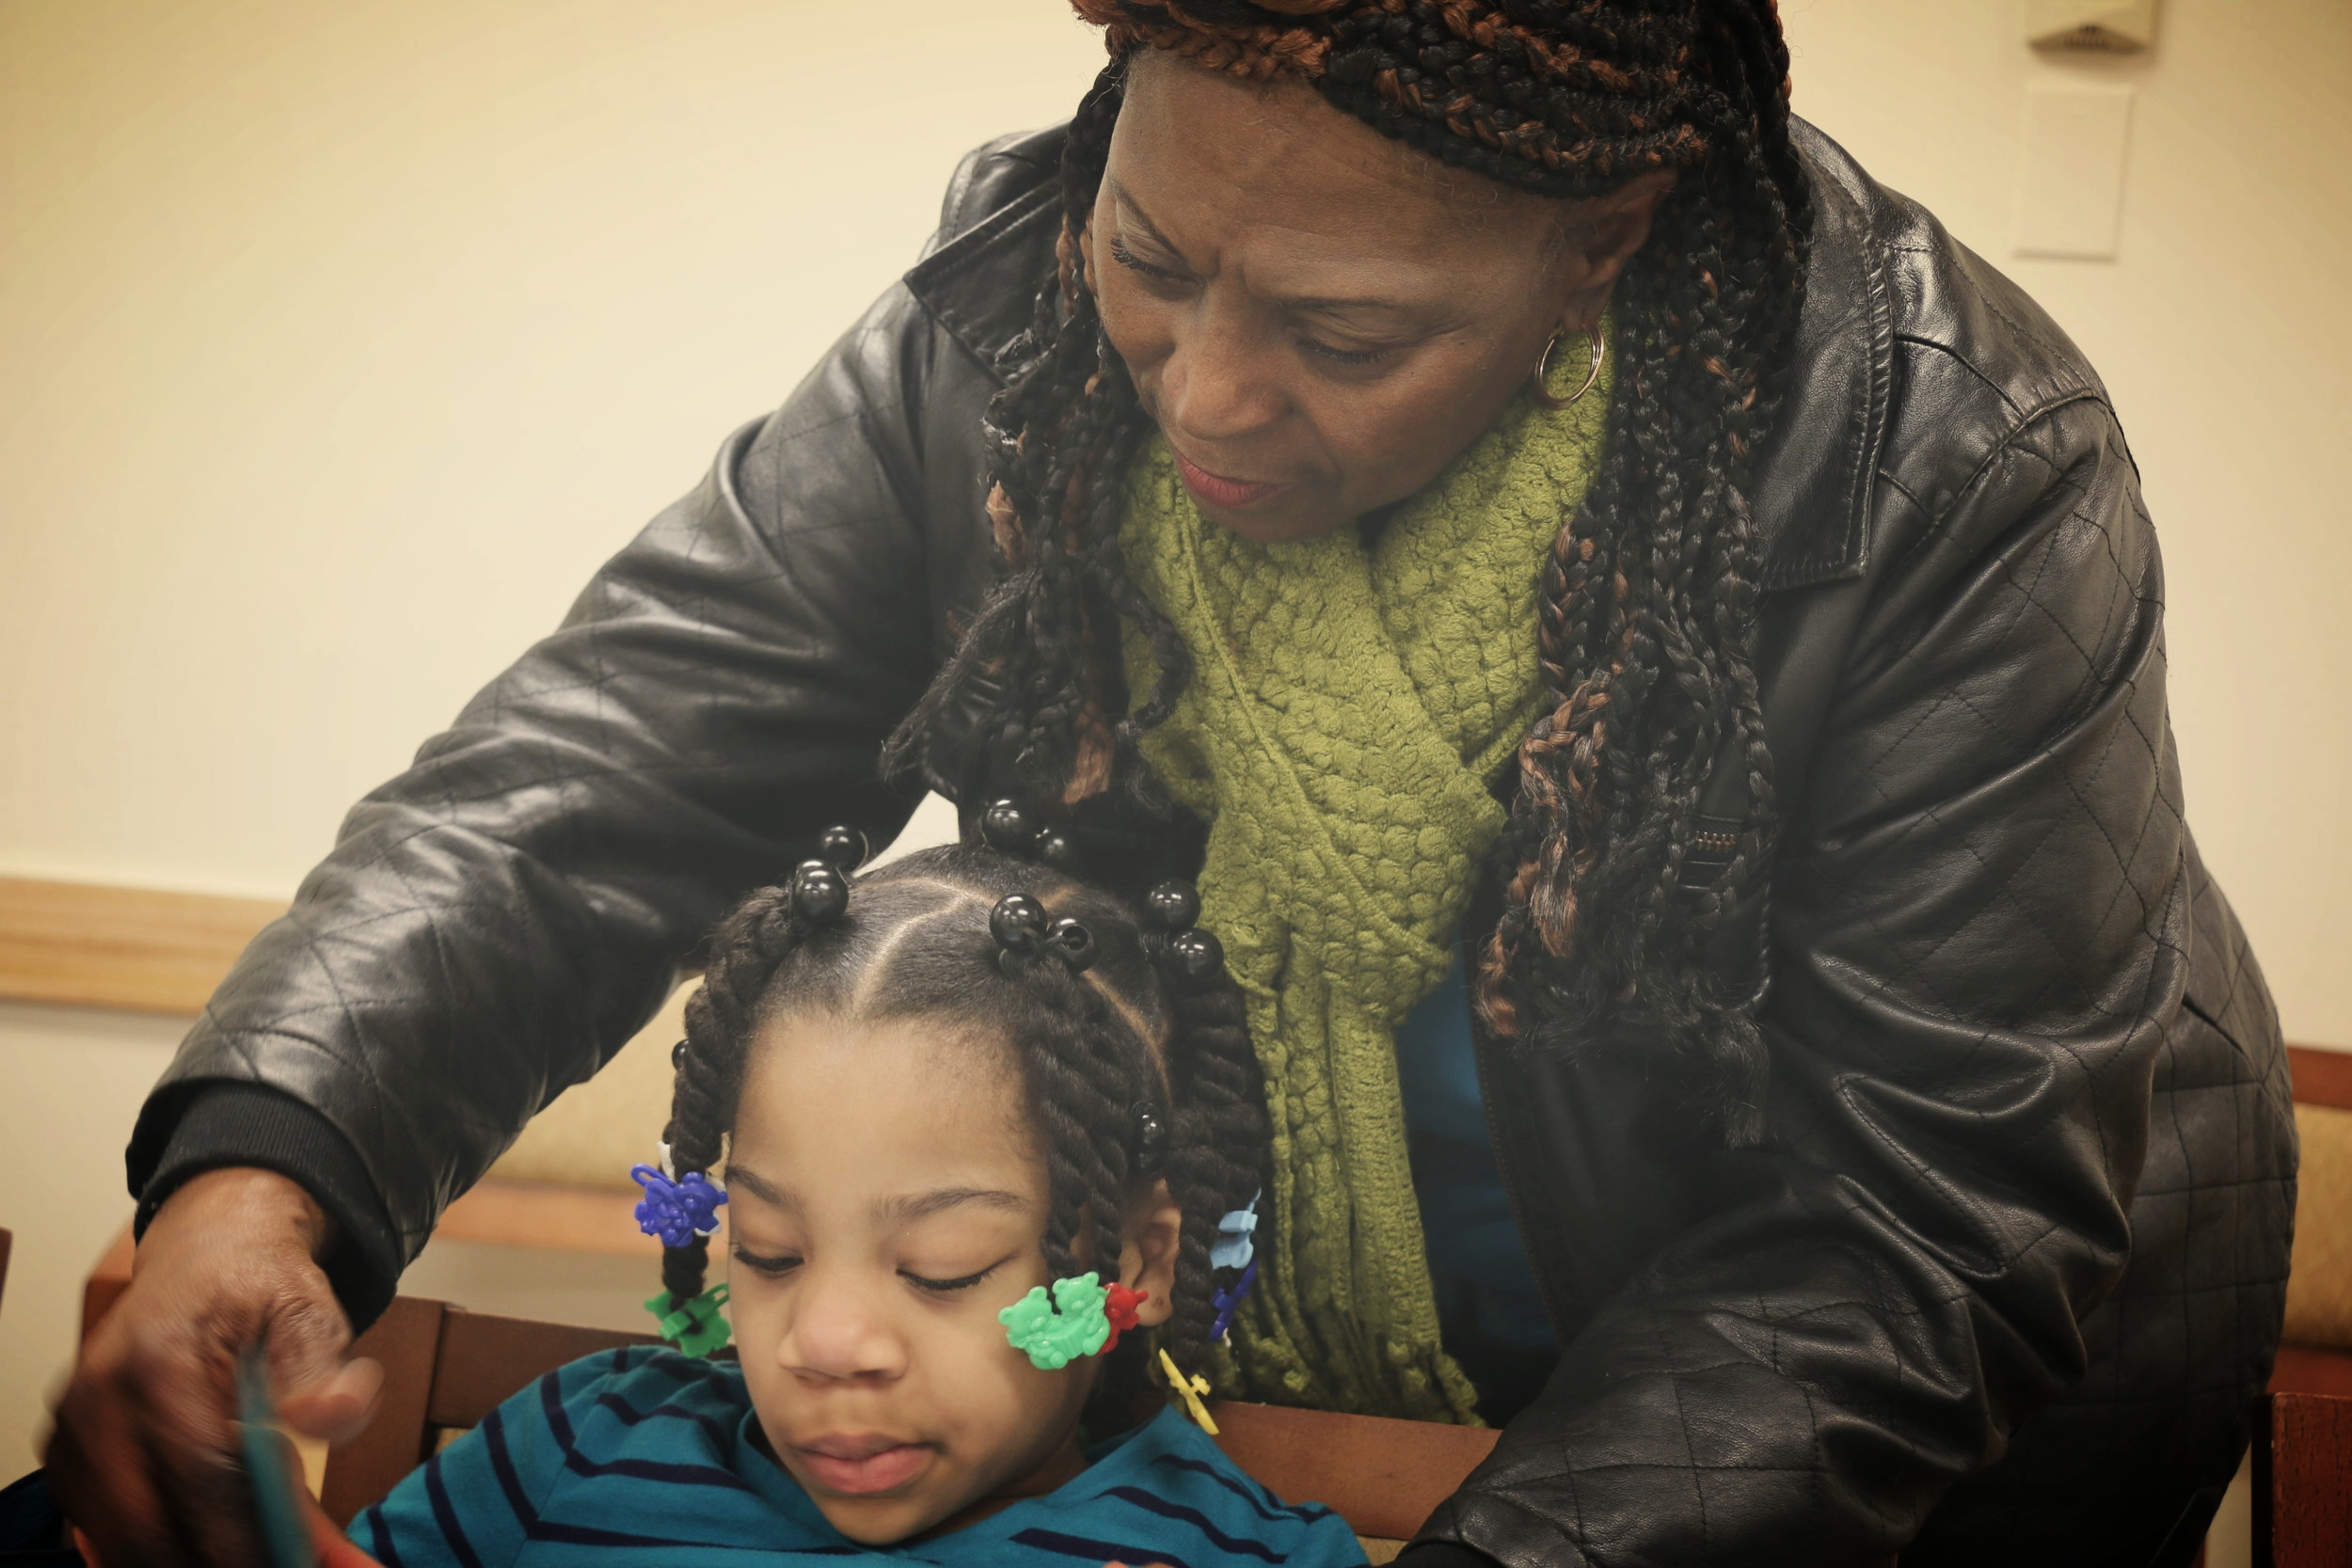 Charlette Purnell, New Jersey Representative, is seen helping a What About YOUth participant with her reading.